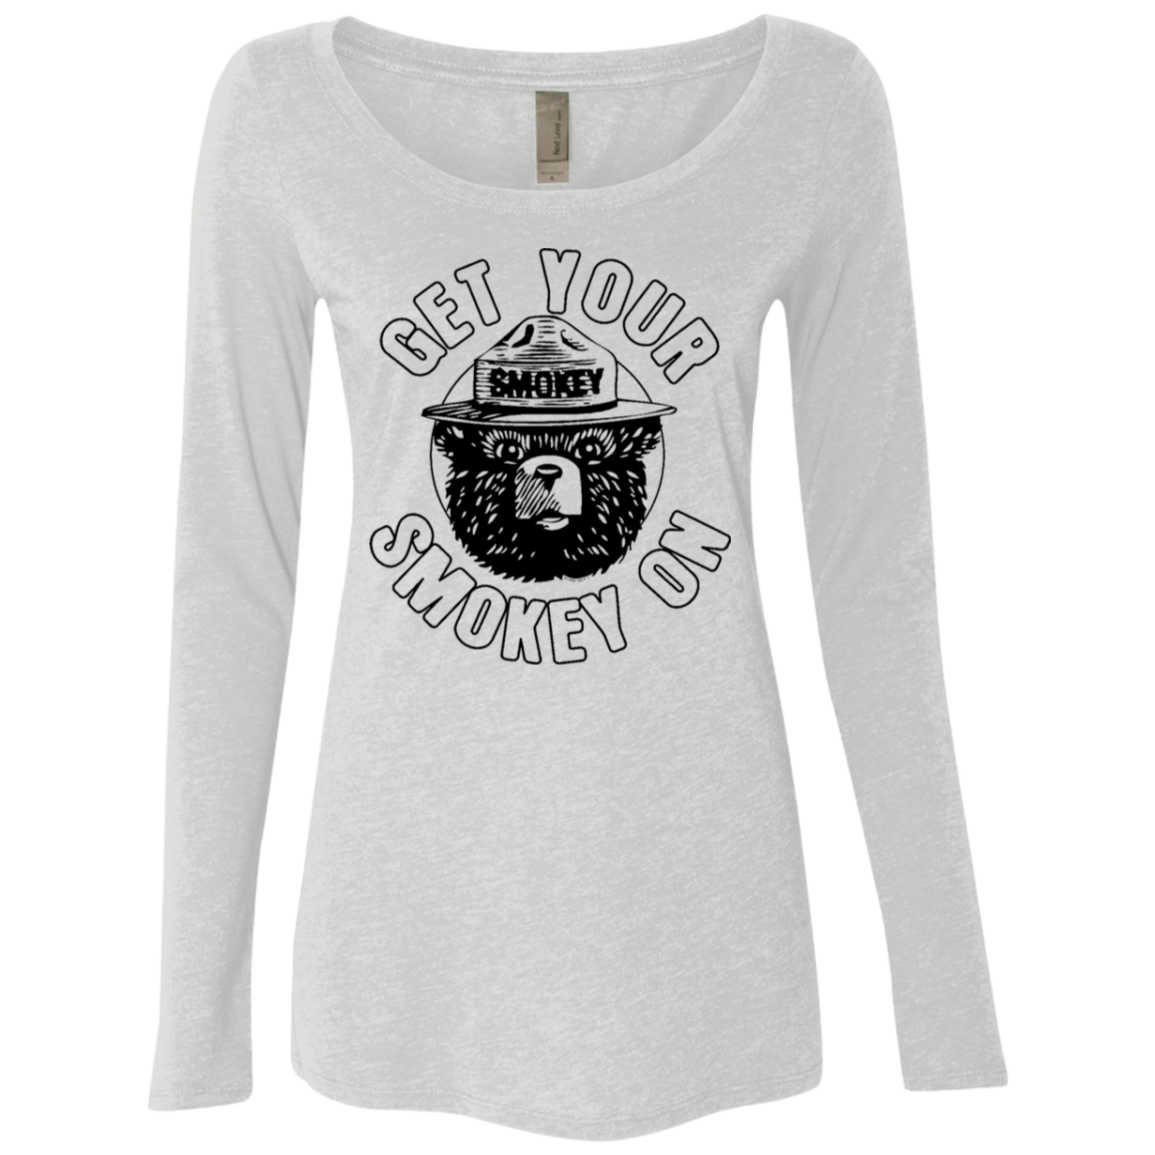 Get Your Smokey On Women's Long Sleeve Tee